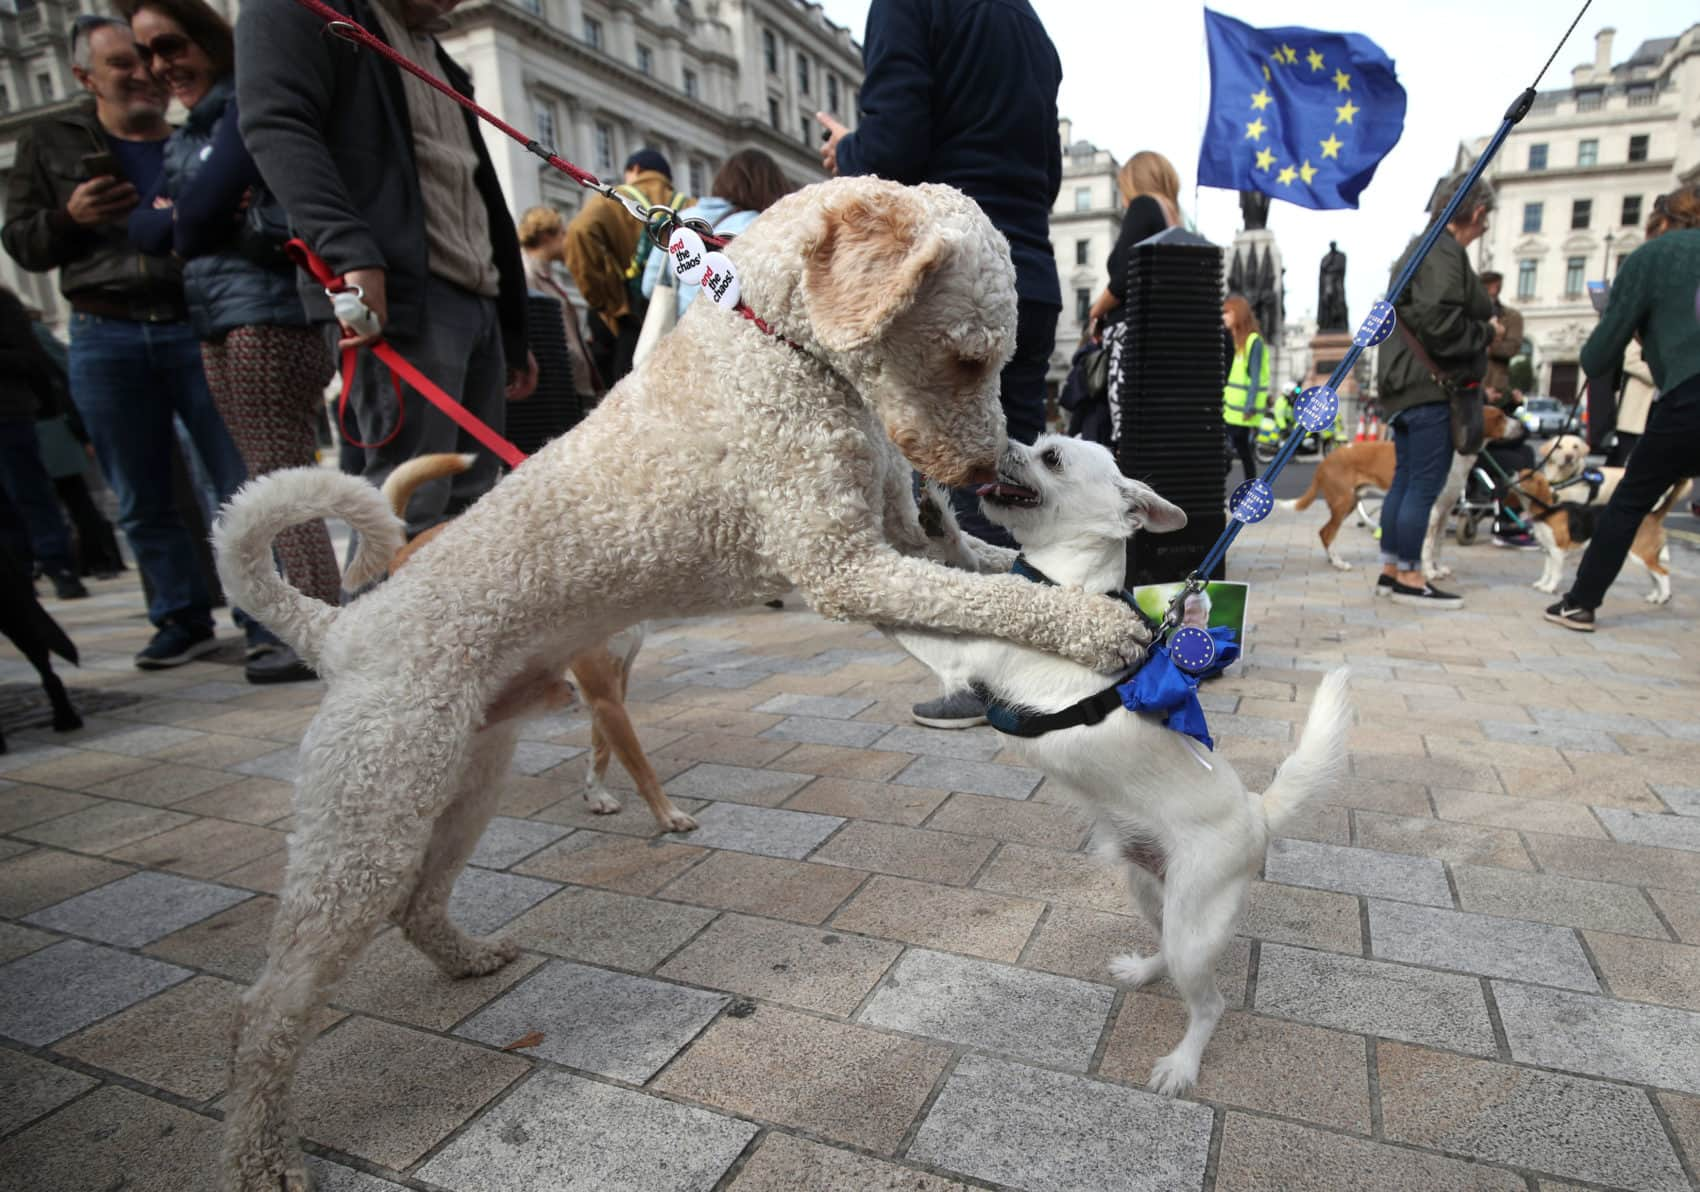 Wooferendum: thousands of dogs and their owners hound Parliament Square to demand a second EU referendum